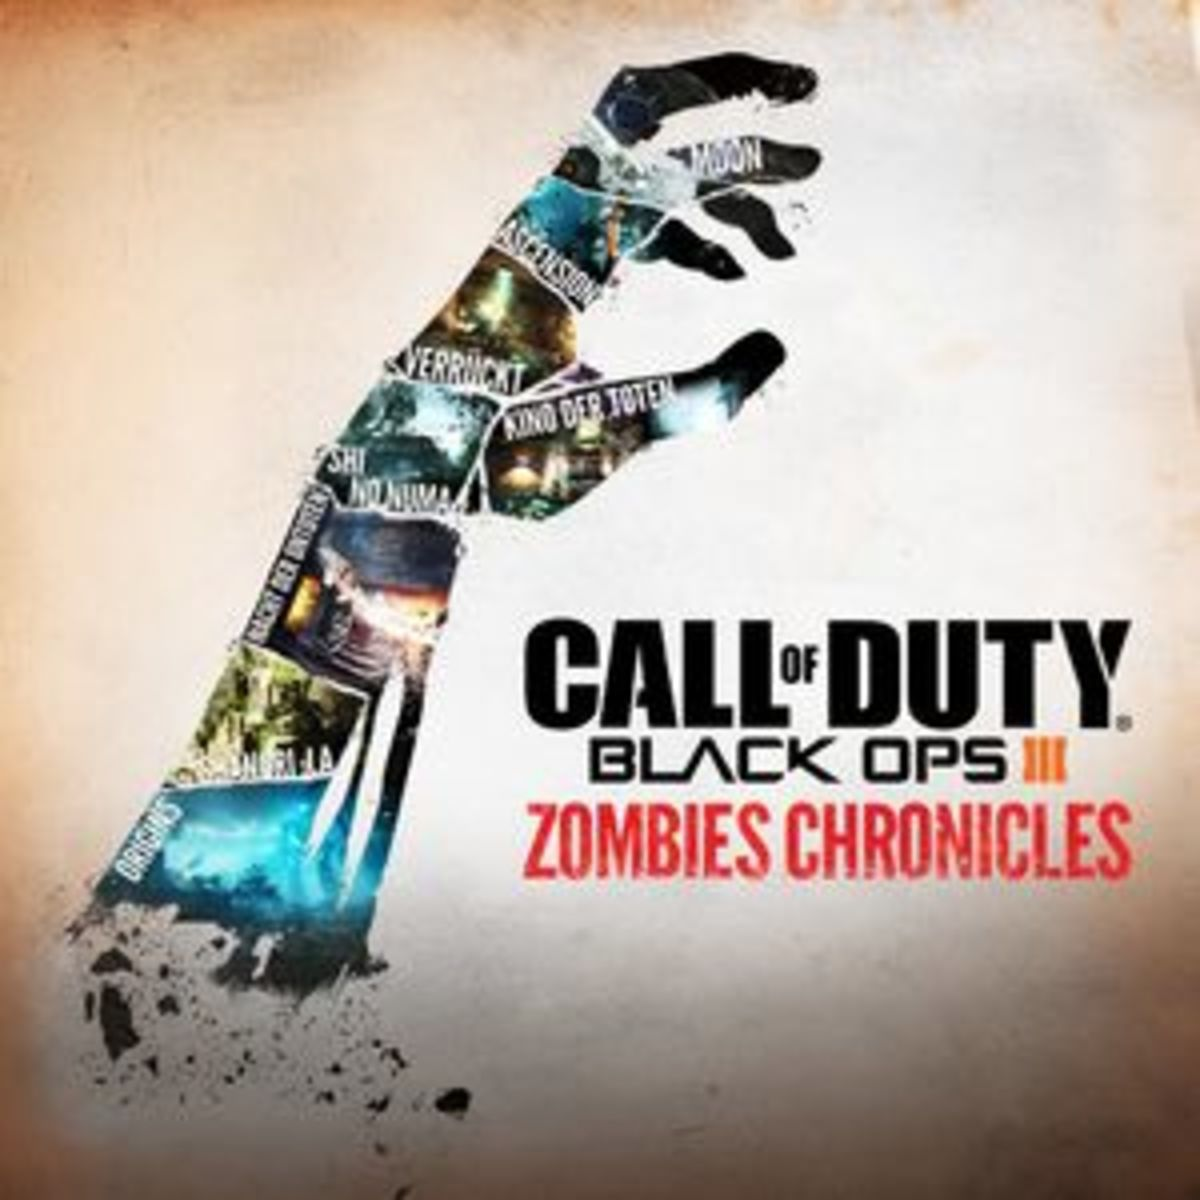 The release poster for Call of Duty: Black Ops III Zombies Chronicles